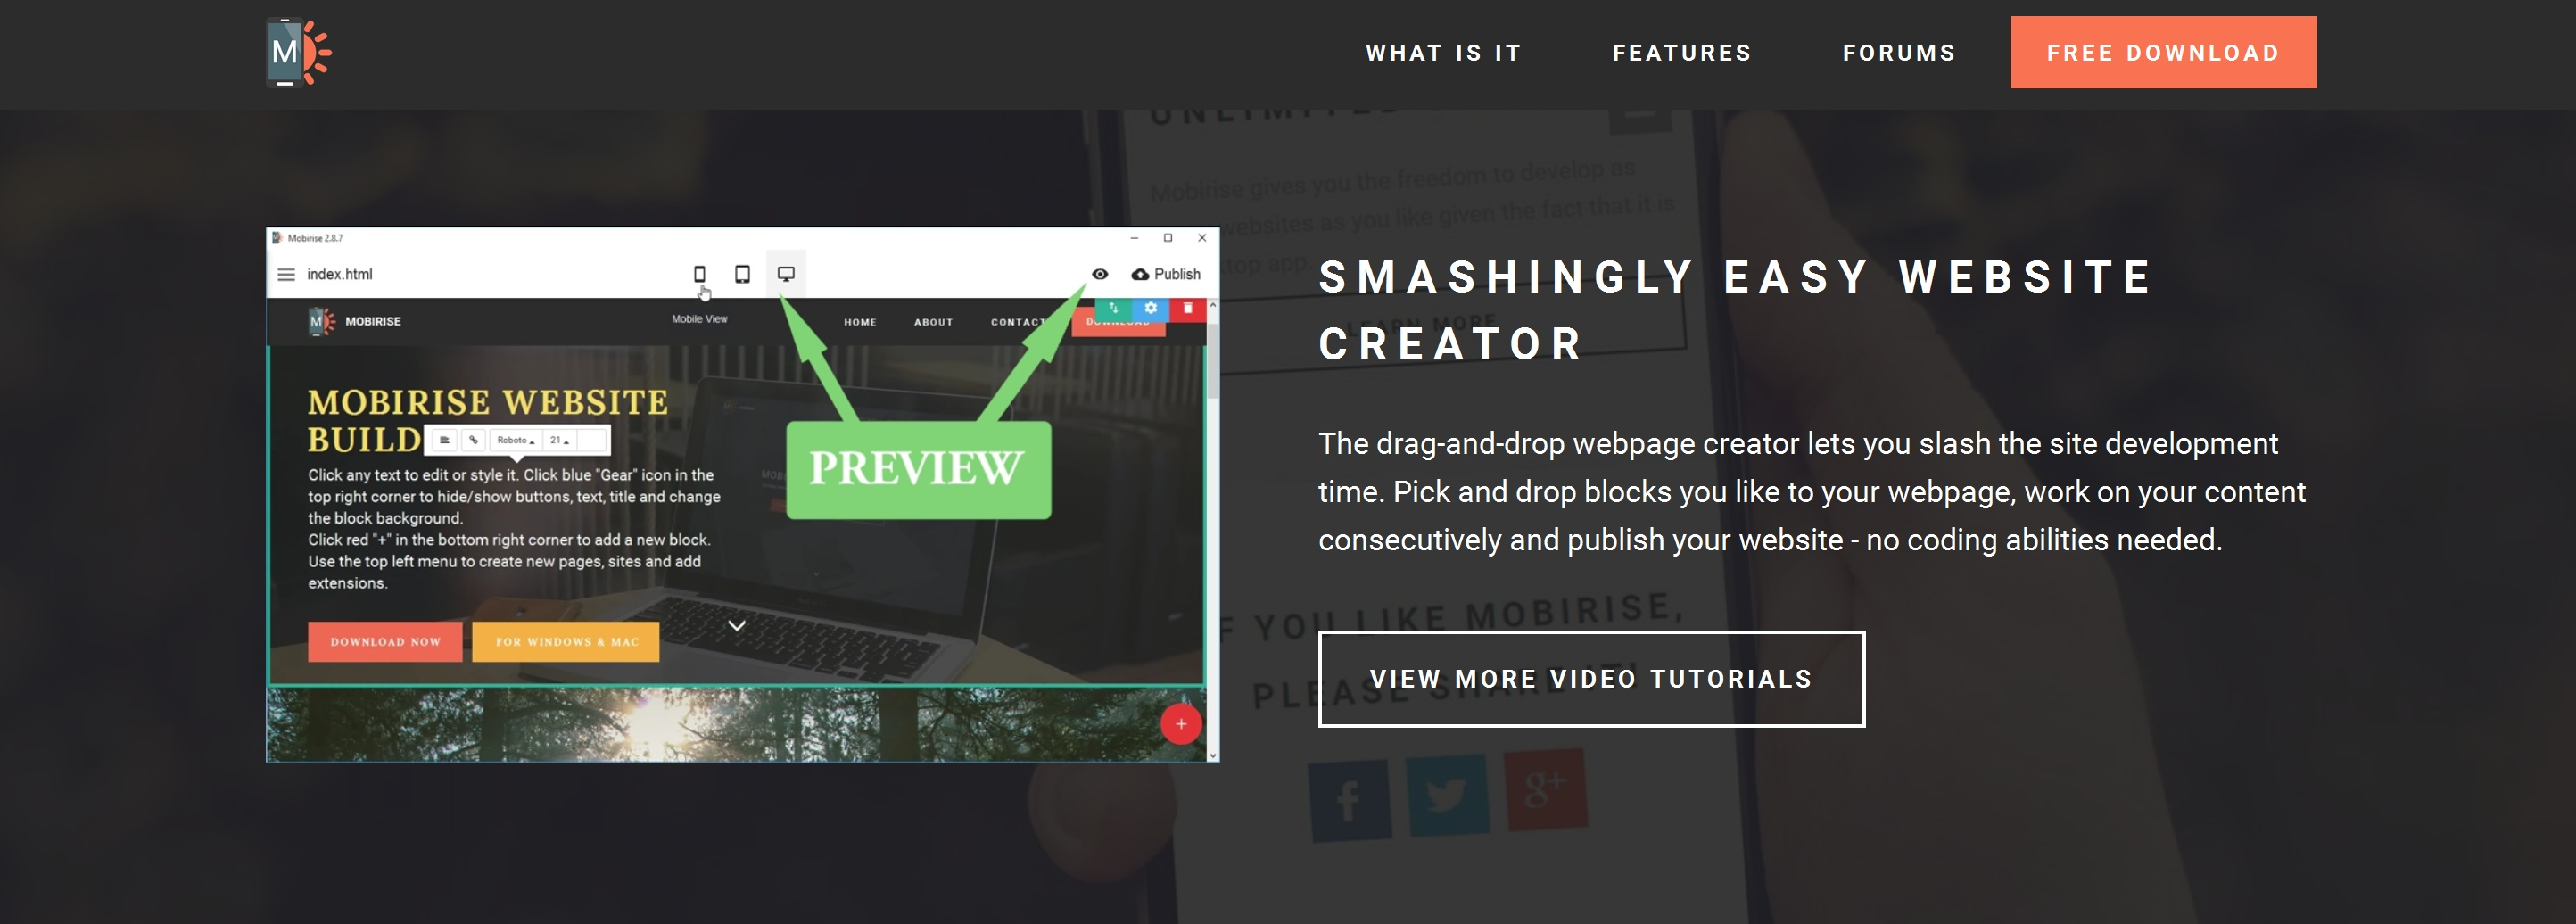 Fast and Easy Website Creator